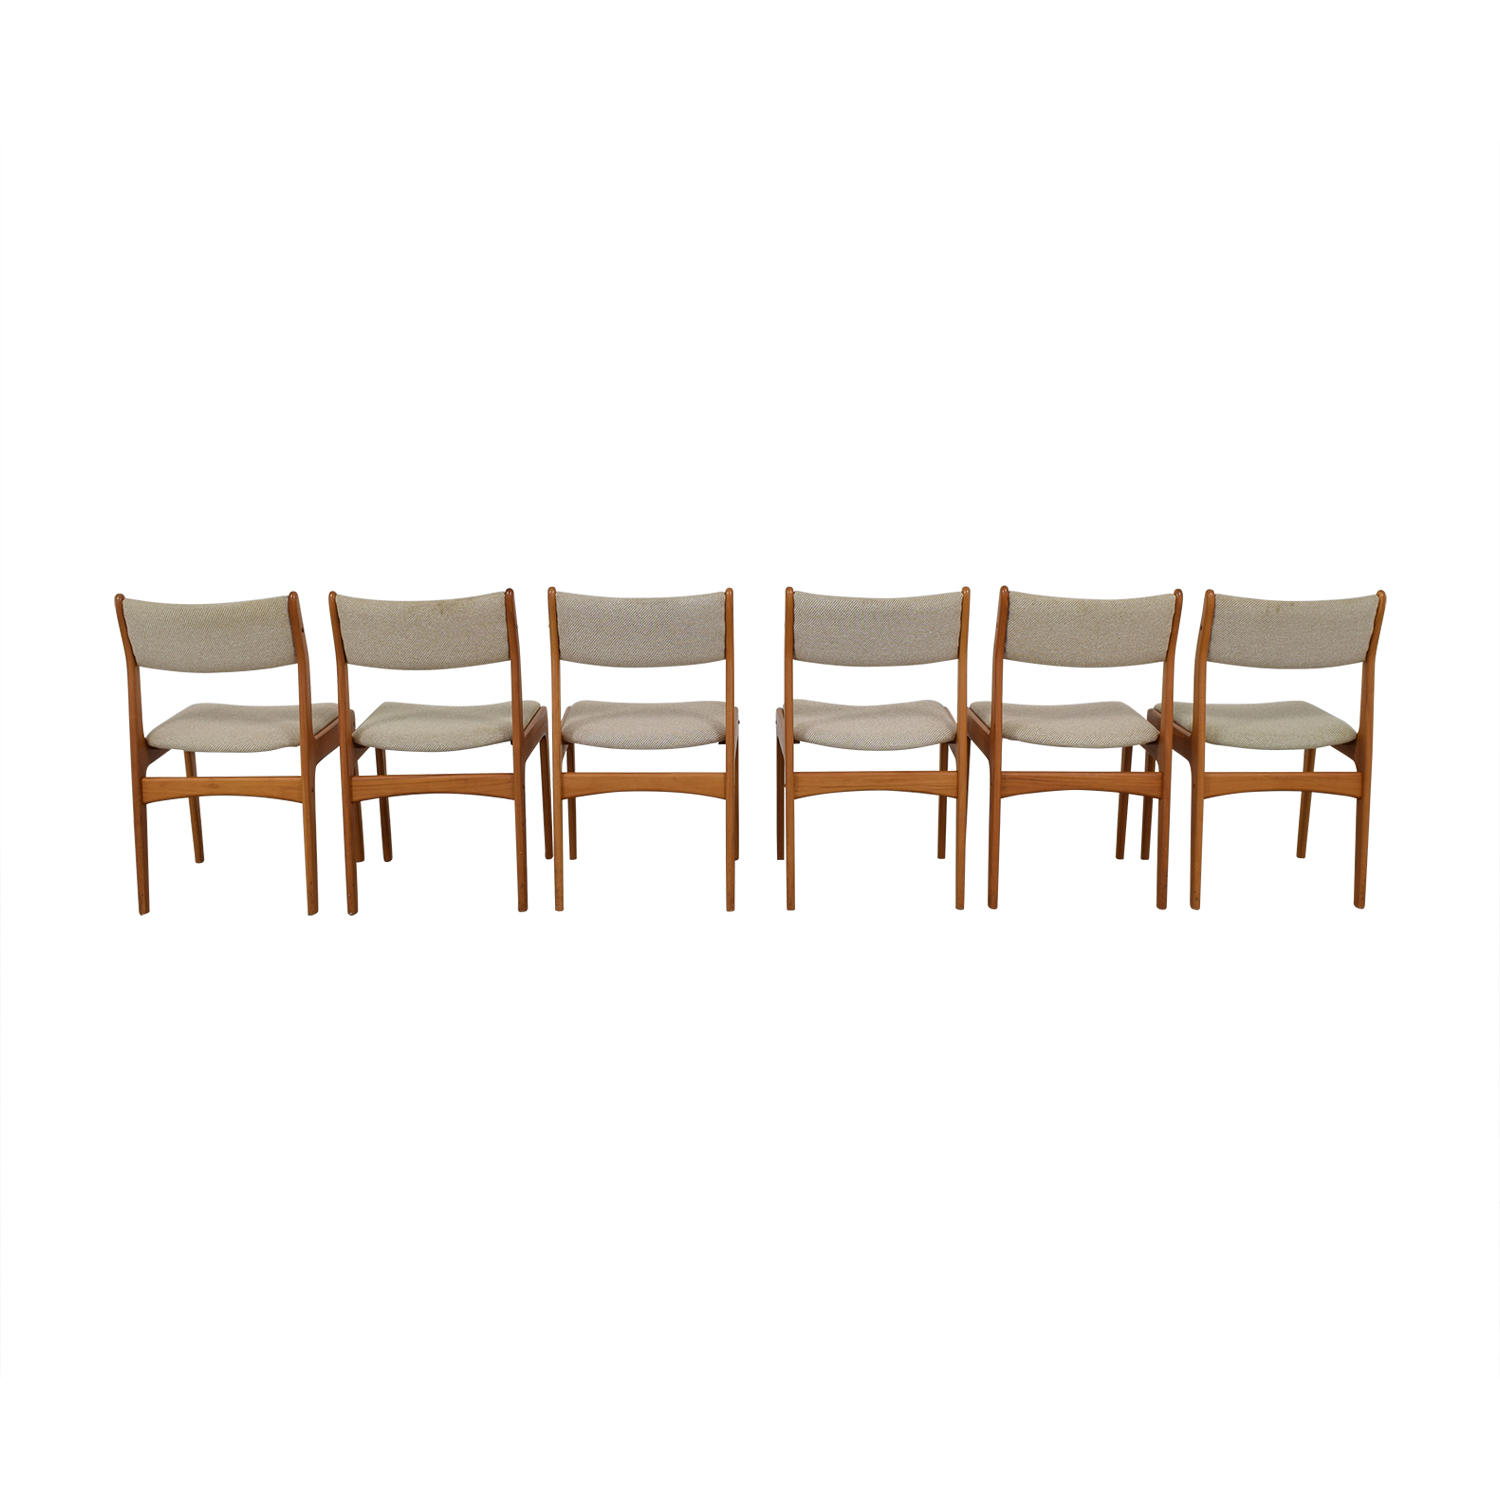 Wood and Beige Upholstered Dining Chairs used